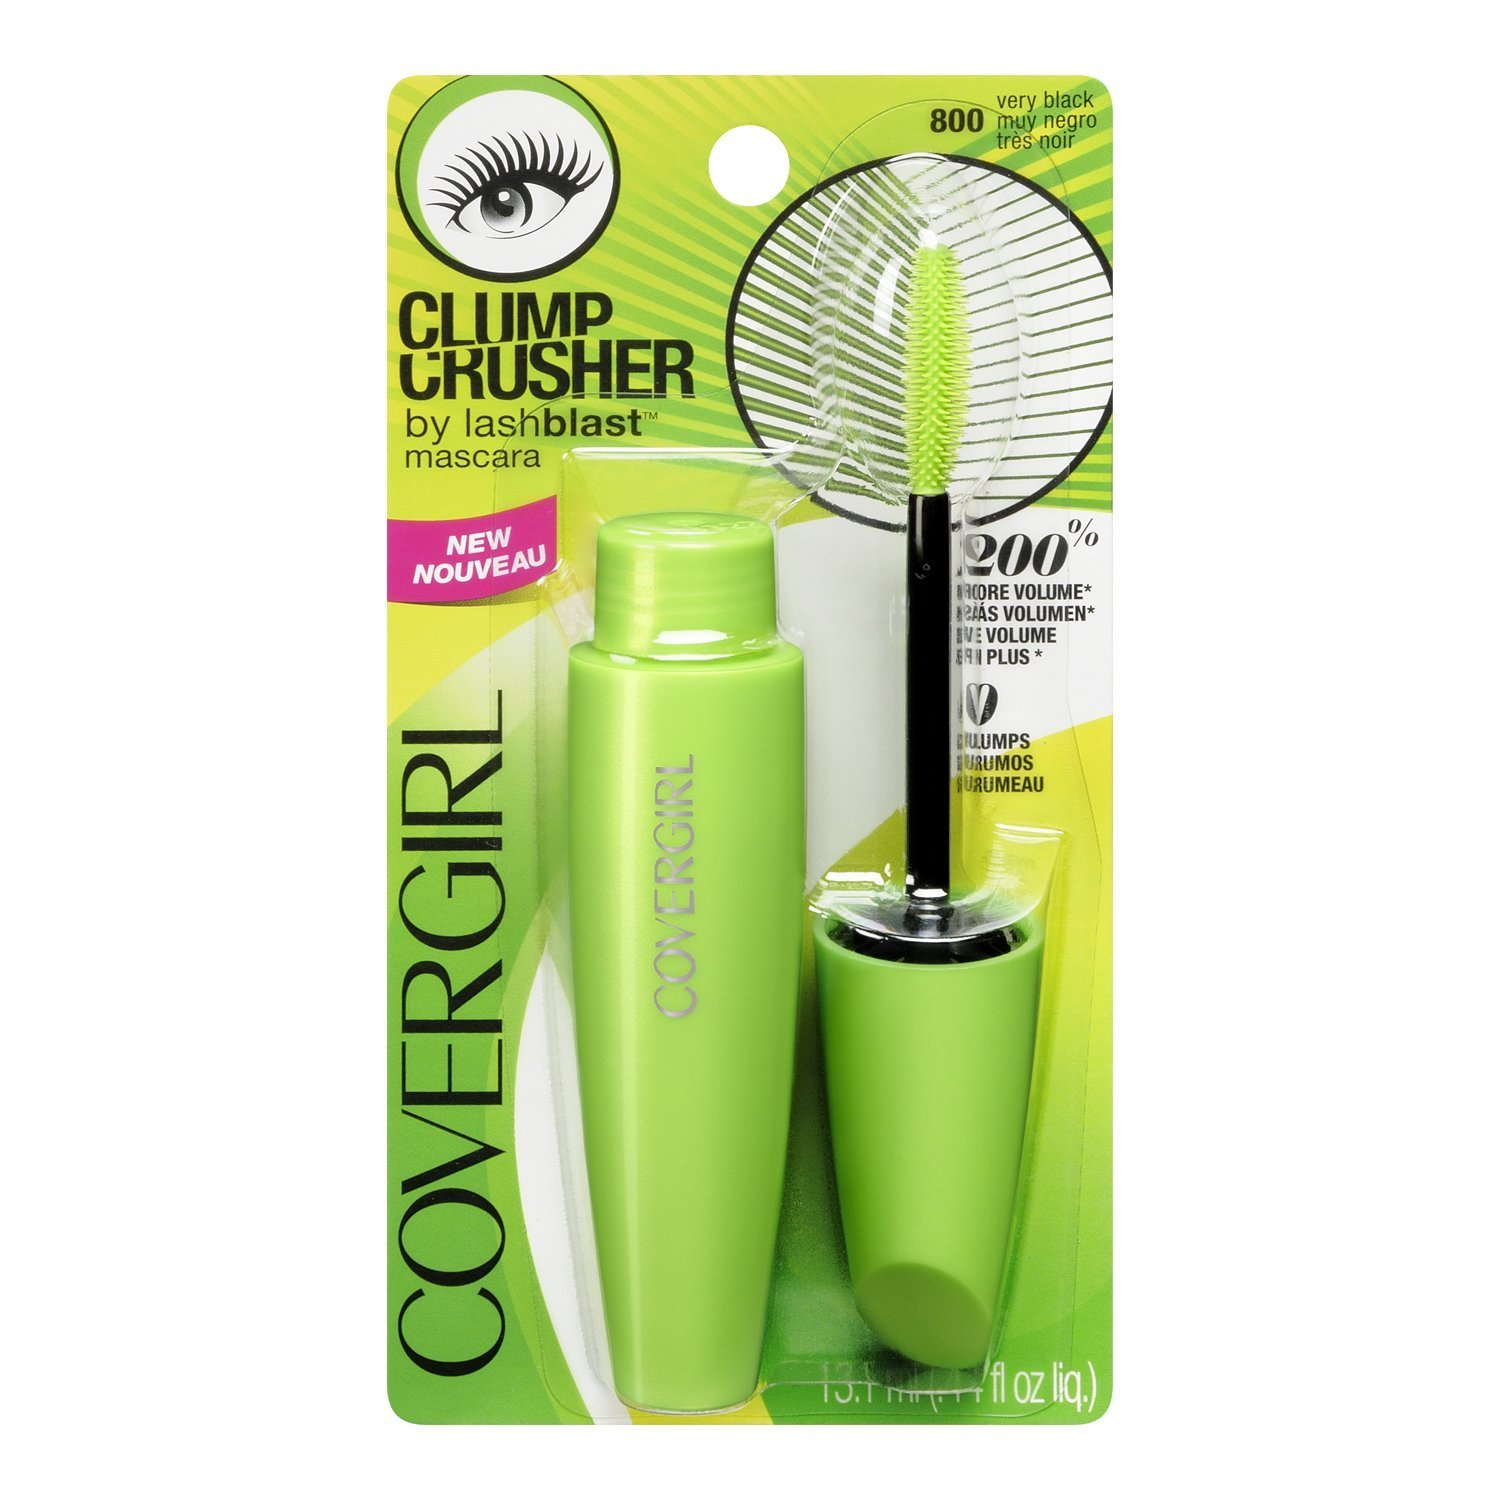 Amazon.com: CoverGirl Clump Crusher Mascara By Lashblast, Very Black [800] 0.44 oz (Pack of 3): Cell Phones & Accessories